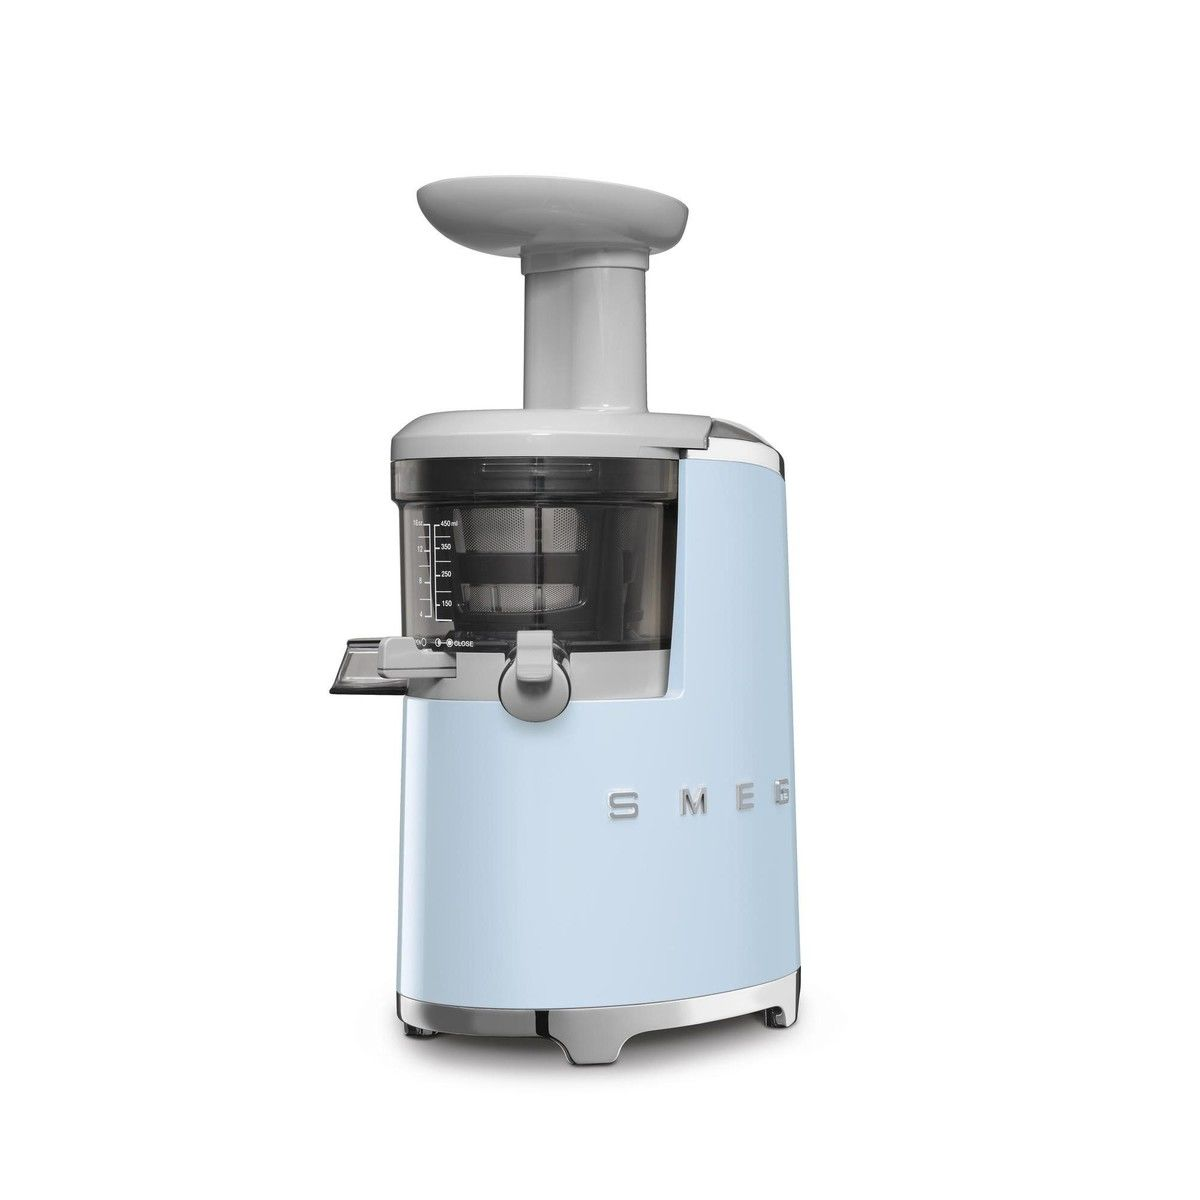 Brands Of Slow Juicer : SJF01 Slow Juicer Smeg AmbienteDirect.com